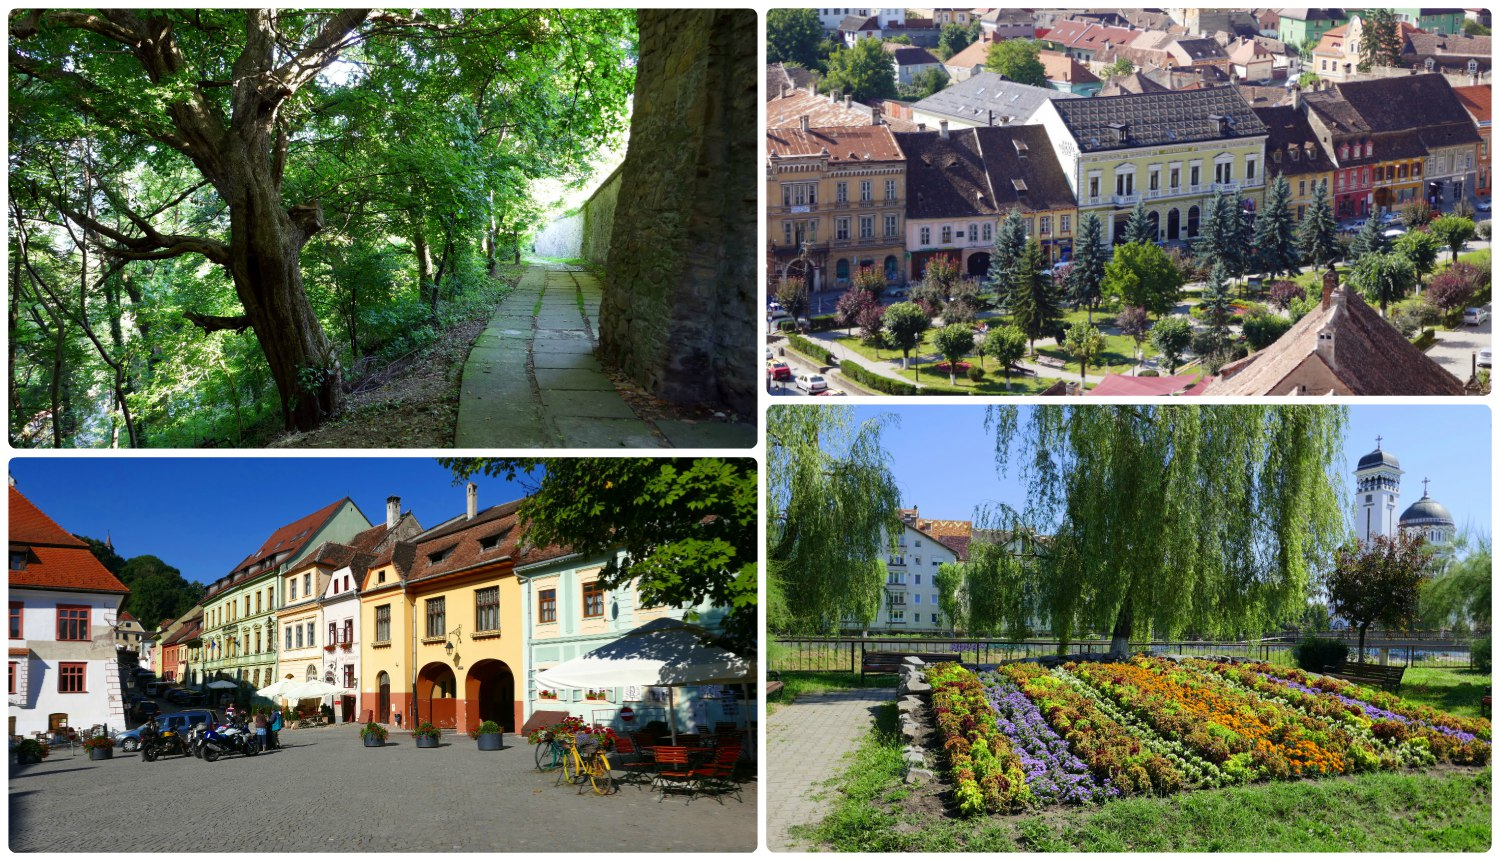 Sighisoara is a beautiful town with many aspects for visitors to enjoy. Clockwise (from the top): The lower part of the hill that the Citadel was built on (with the exception of the the 'new city center' side of the hill) is a forested park-like area with many winding paths leading to the top, a view of the newer part of city center taken from the Clock Tower, we walked past a garden along the water way that was opposite the Holy Trinity Church, Citadel Square is a popular meeting place for locals and tourists.